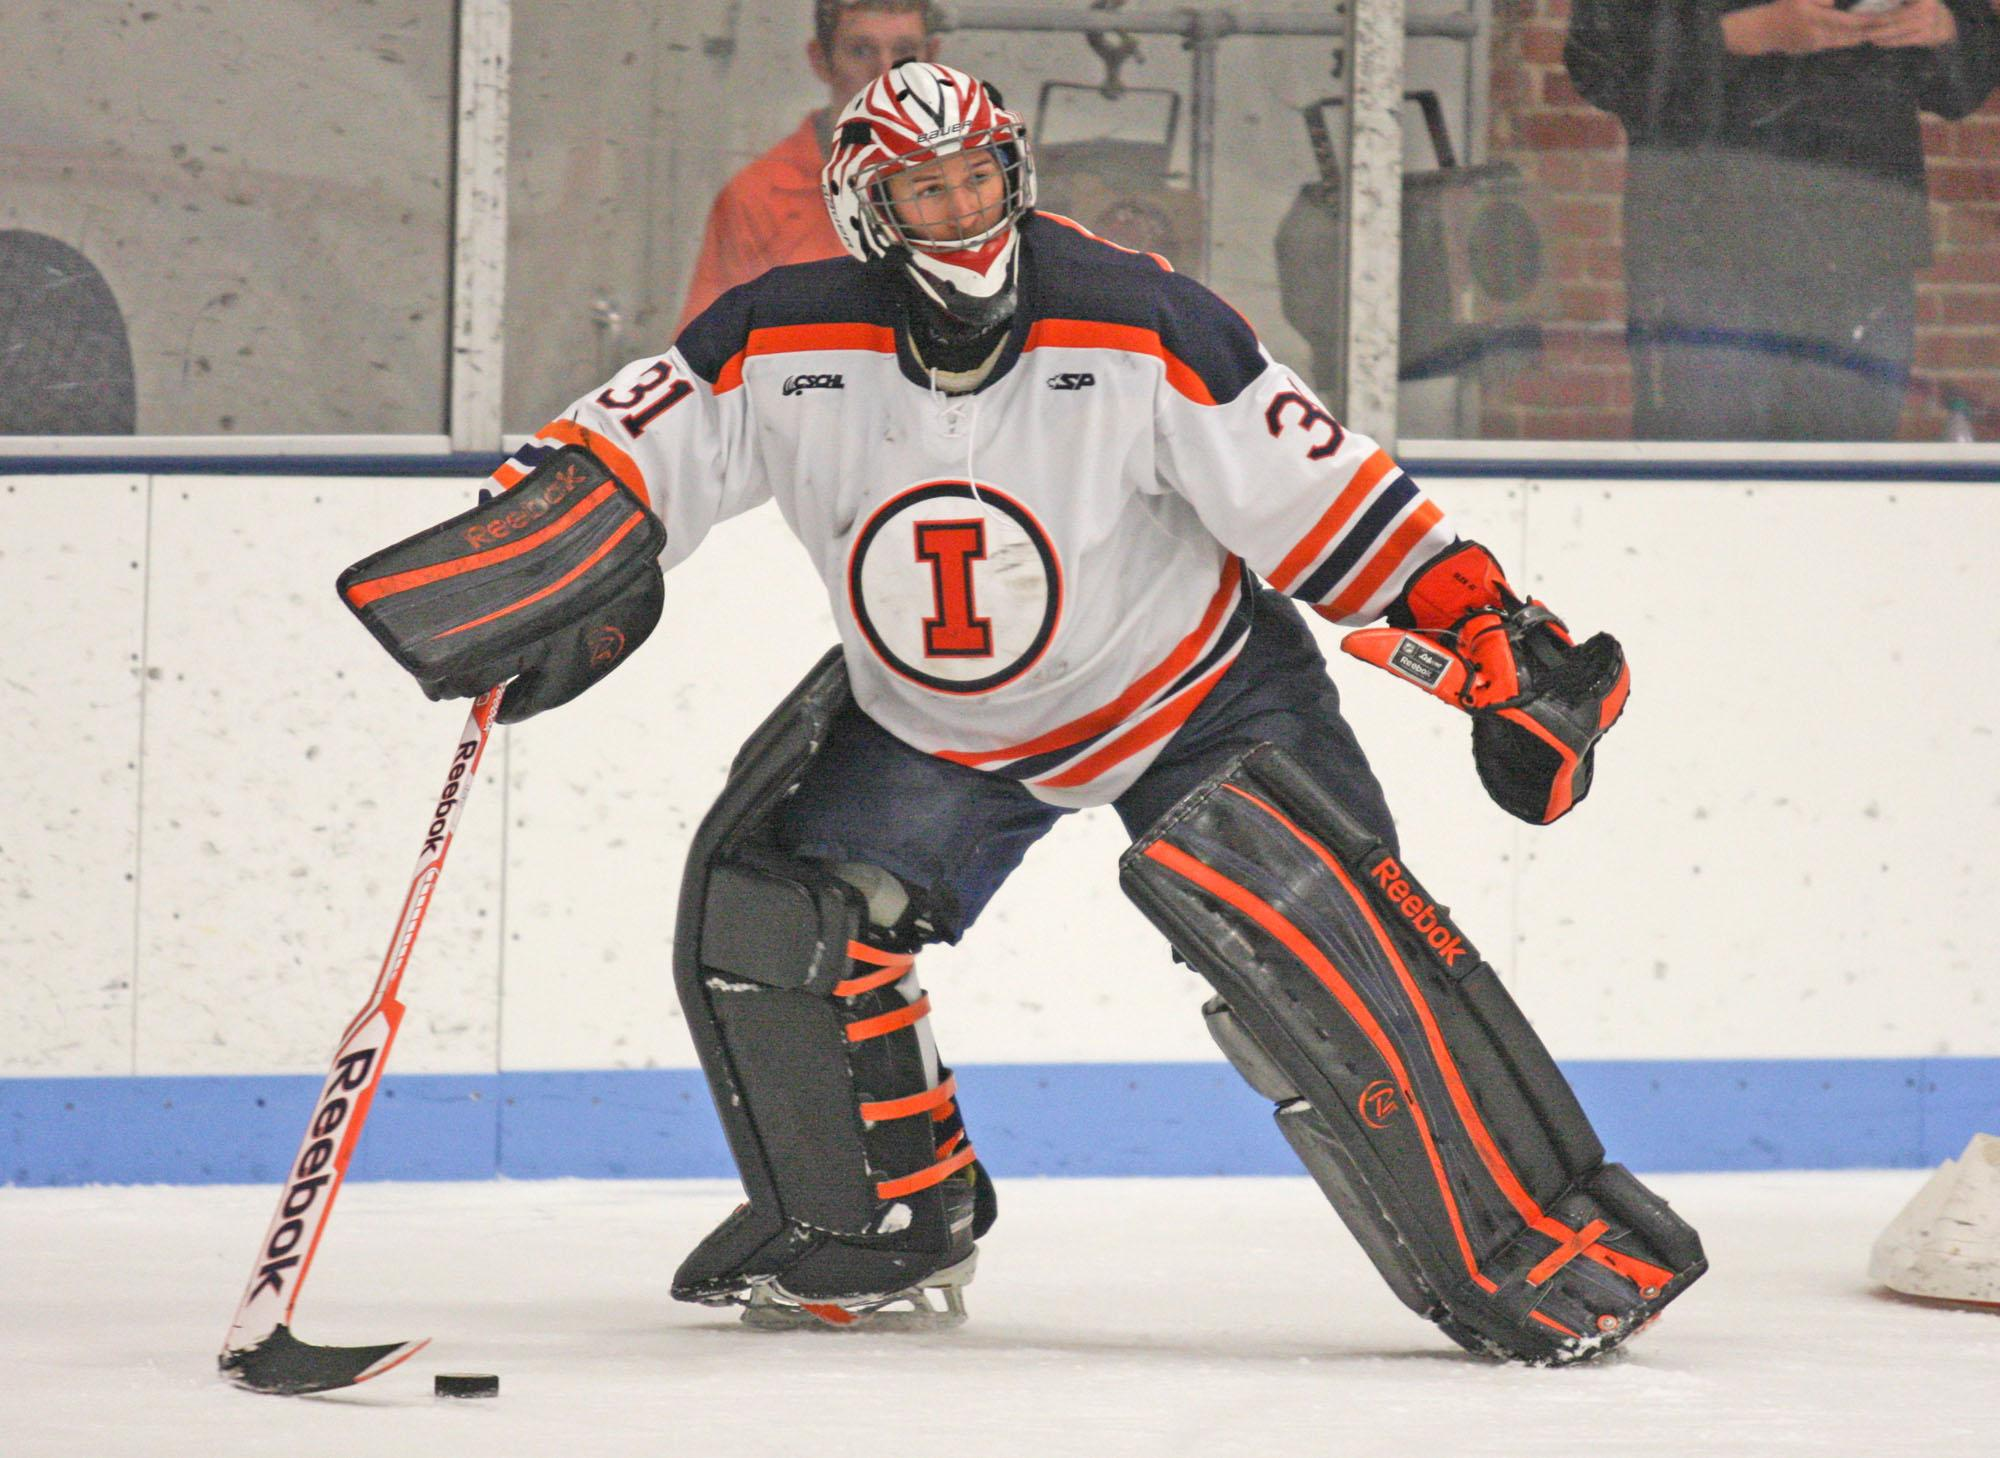 Illinois' Joe Olen (31) looks for somebody to pass the puck to during the Ohio hockey game at the Ice Arena on Friday, October 24, 2014. The Illini won 2-1.